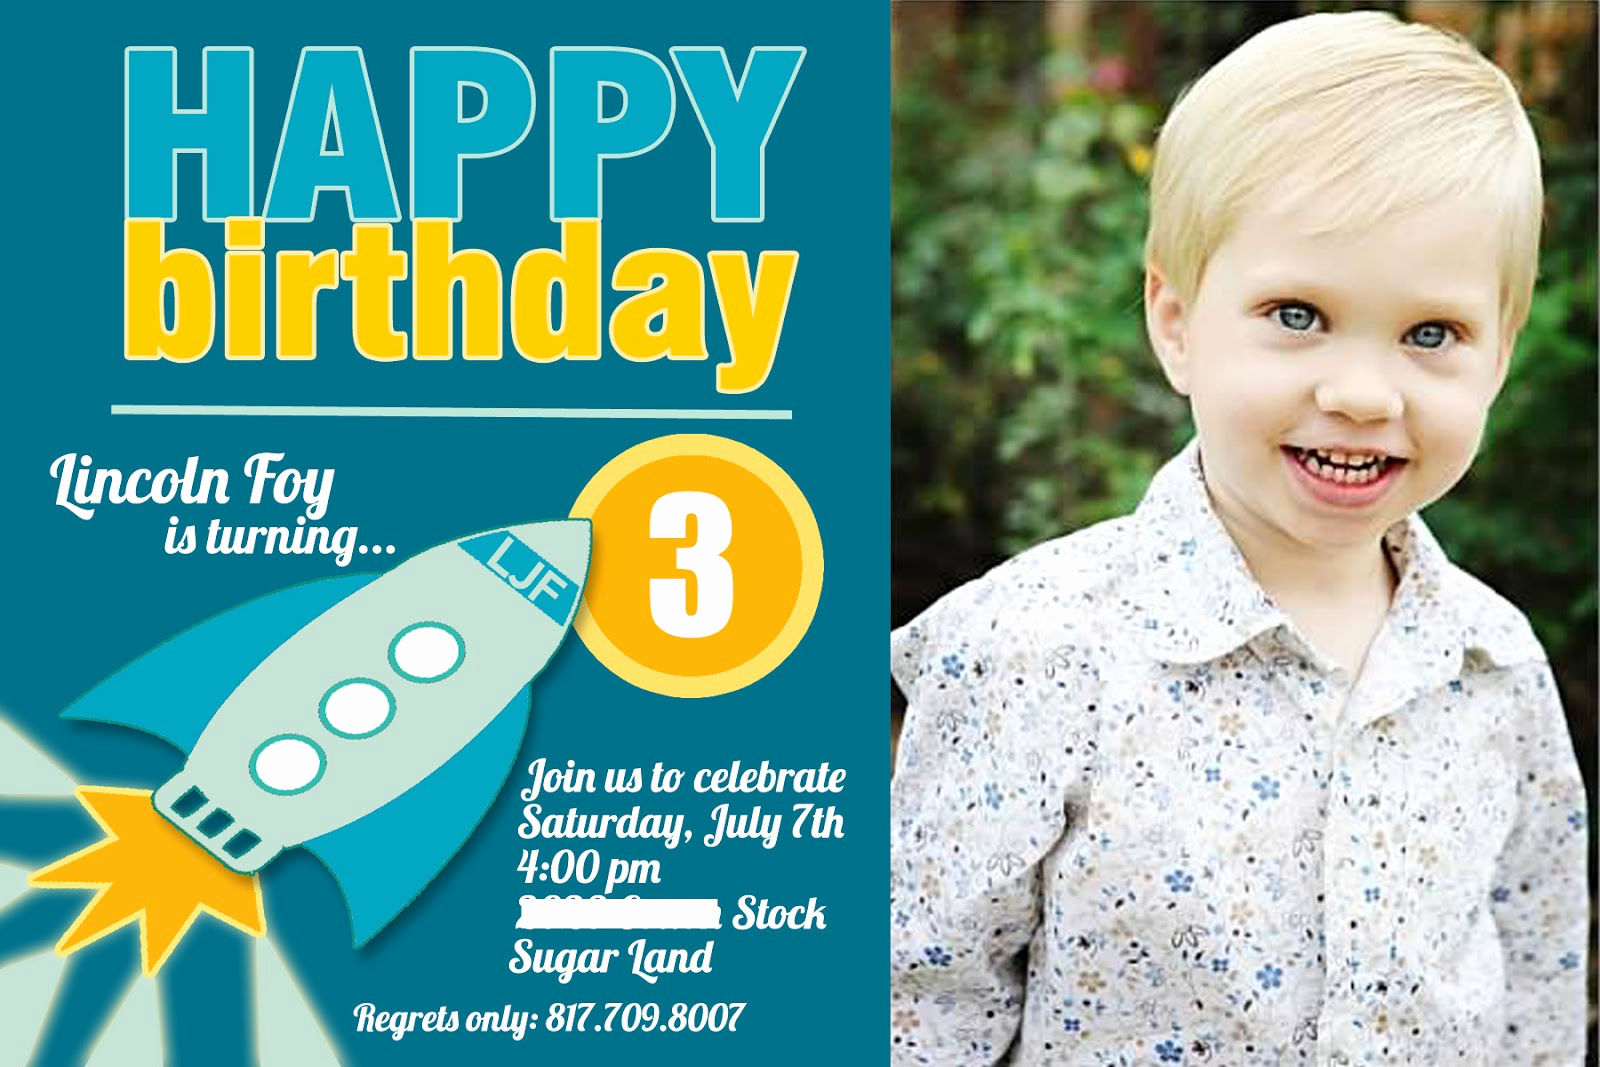 3rd Birthday Party Invitation Wording Inspirational 3rd Birthday Party Invitation Wording